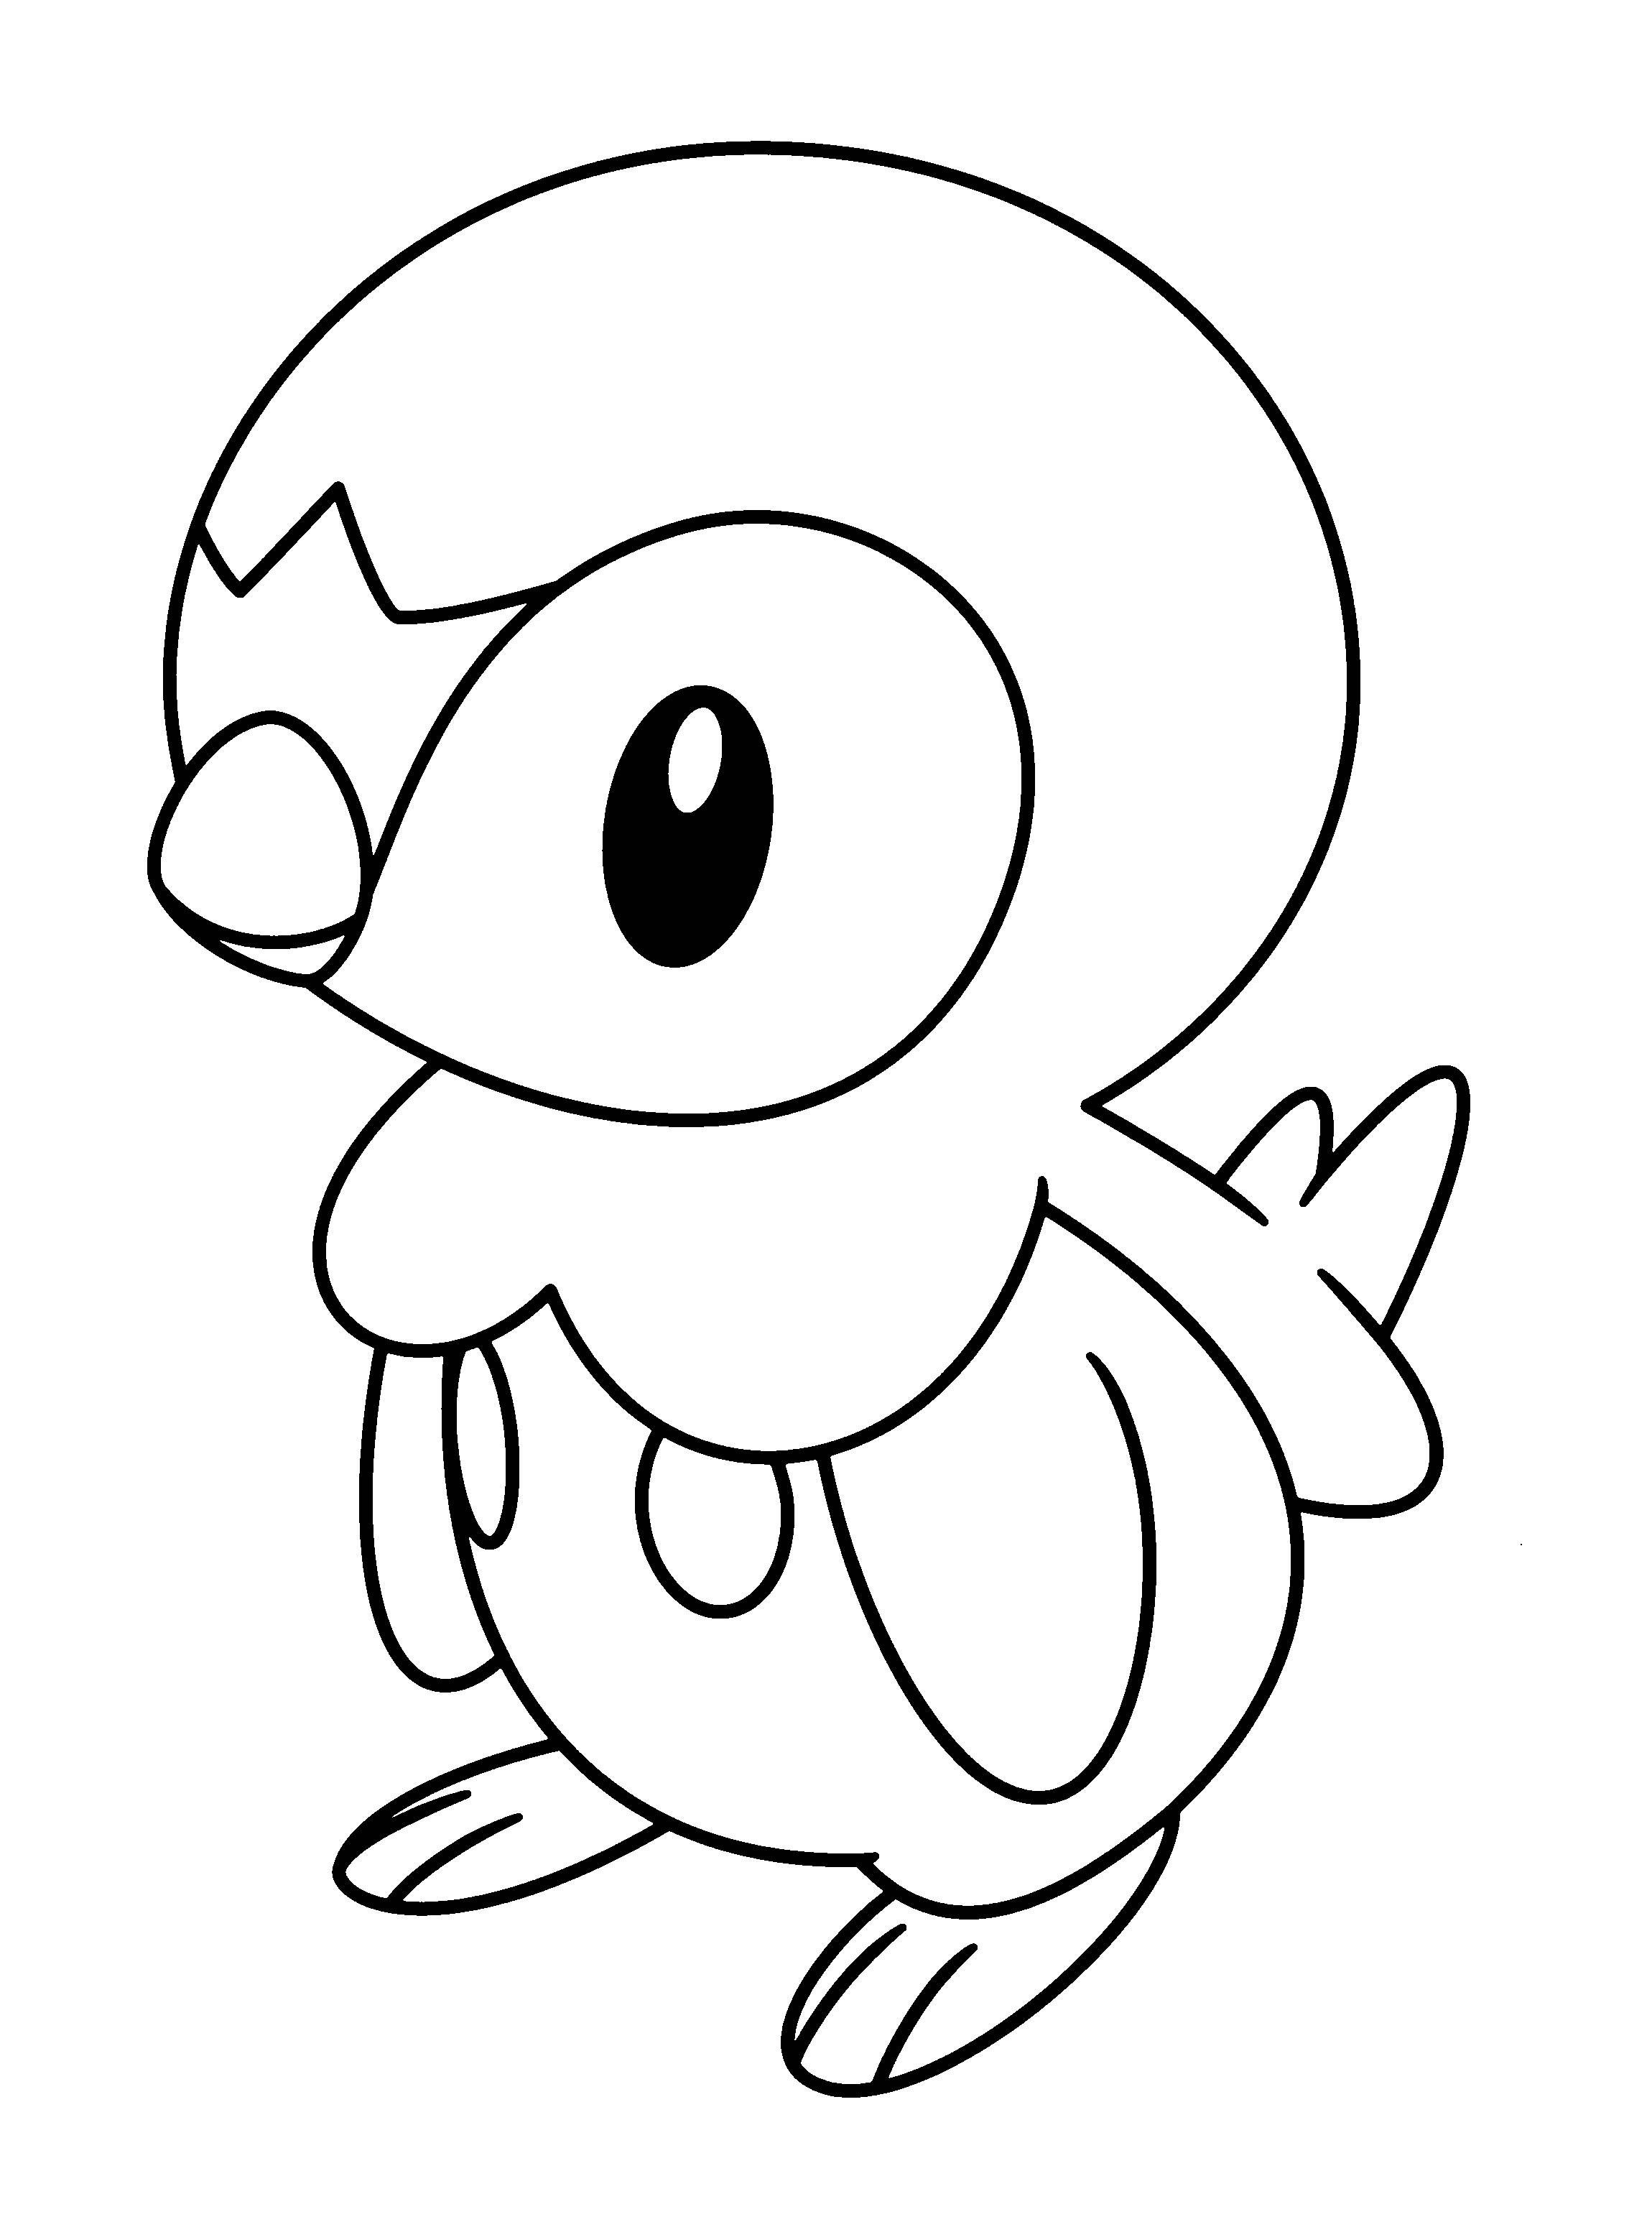 Pokemon Piplup Coloring Pages Free